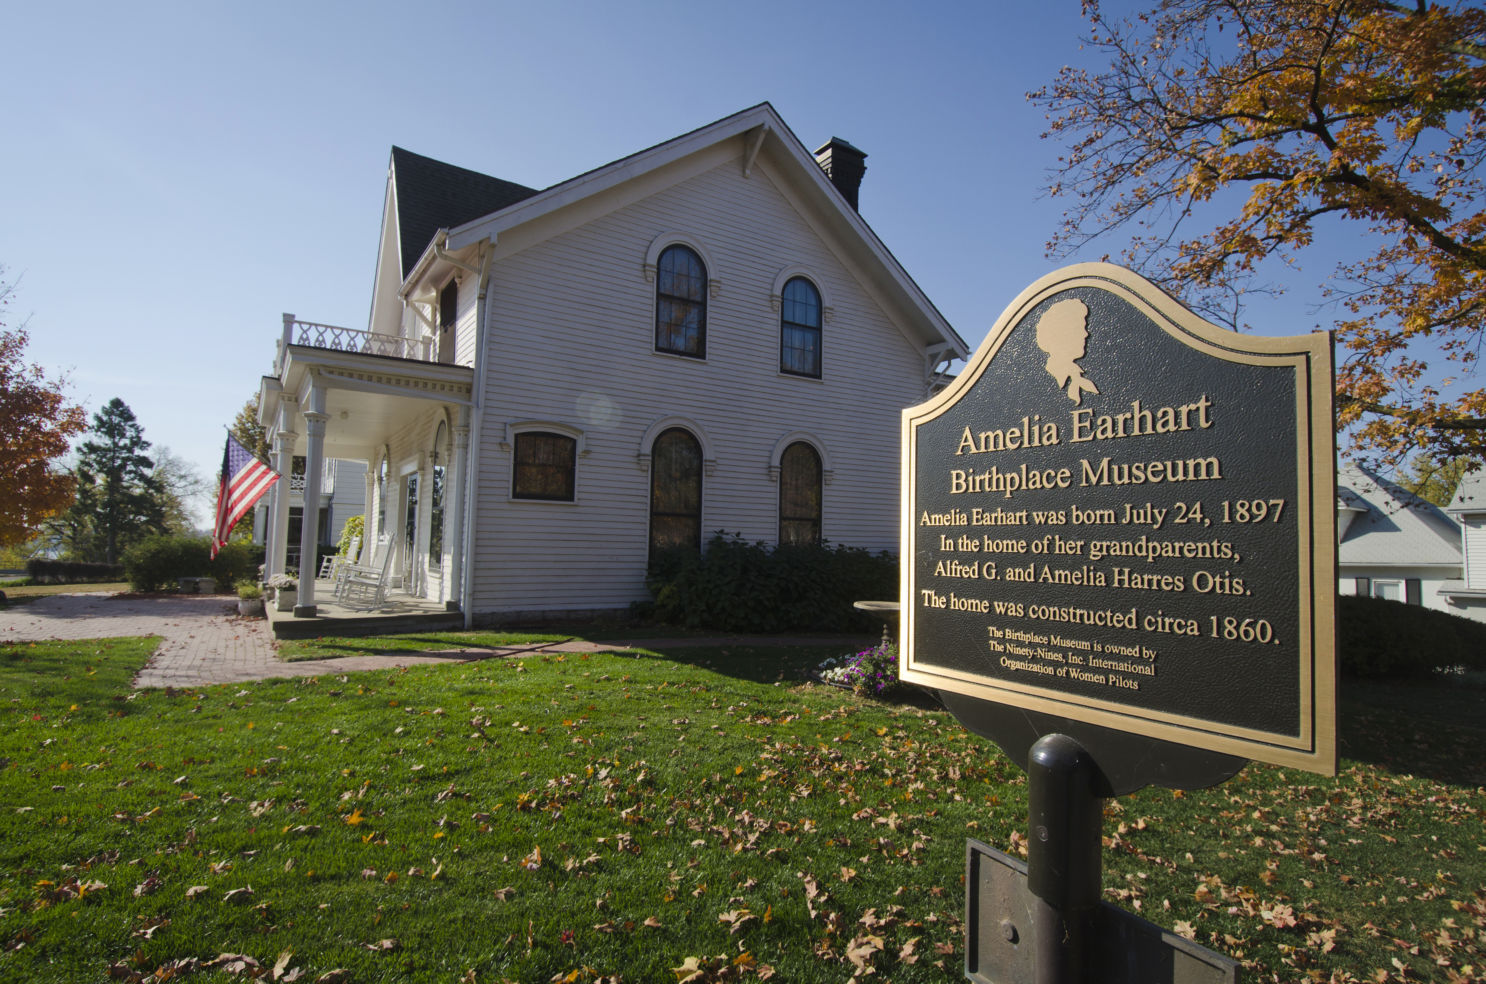 Amelia Earhart Birthplace Museum, Atchison, Kansas